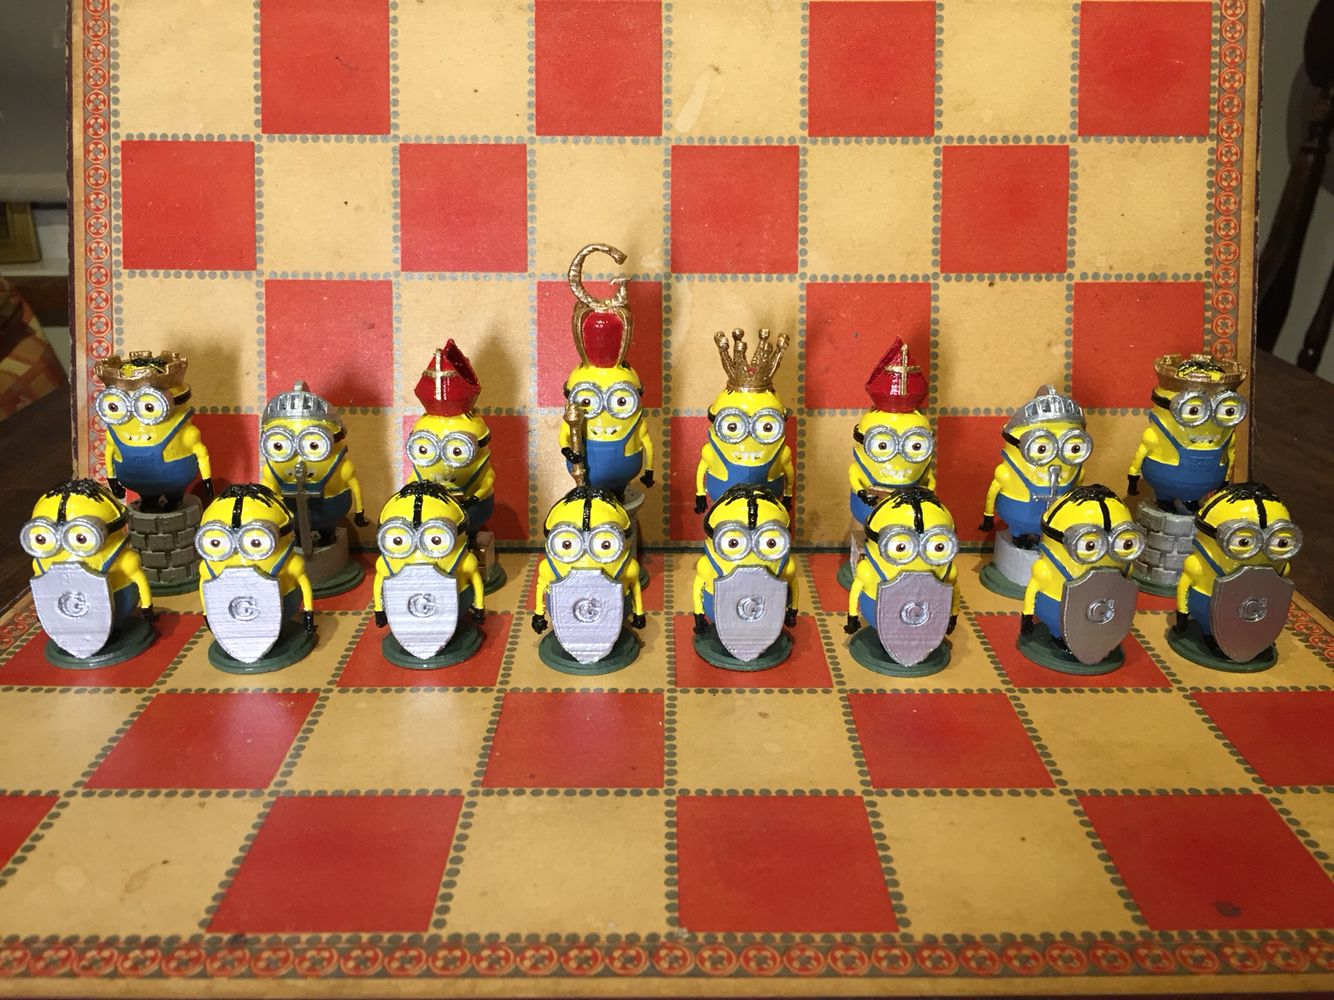 Minions Chess Set Pieces Chess Set Chess Pieces Chess Board